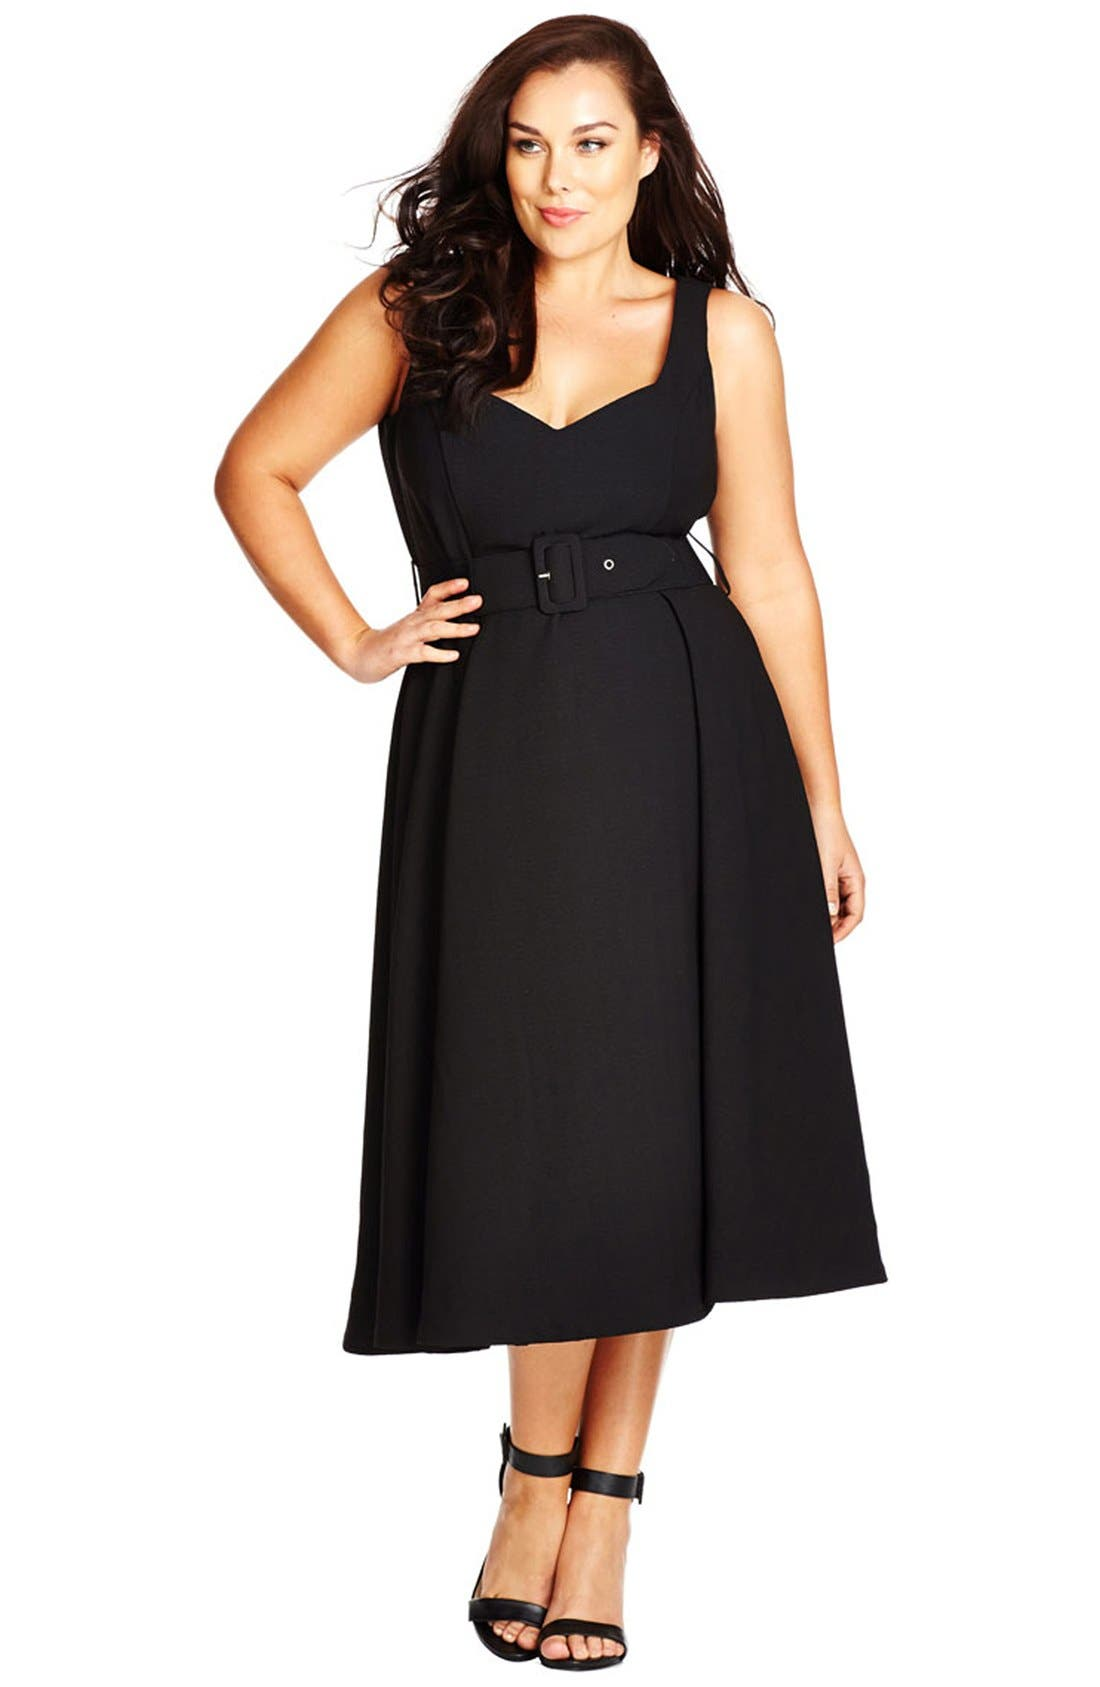 CITY CHIC, Belted Sweetheart Neck Tea Length Dress, Main thumbnail 1, color, BLACK